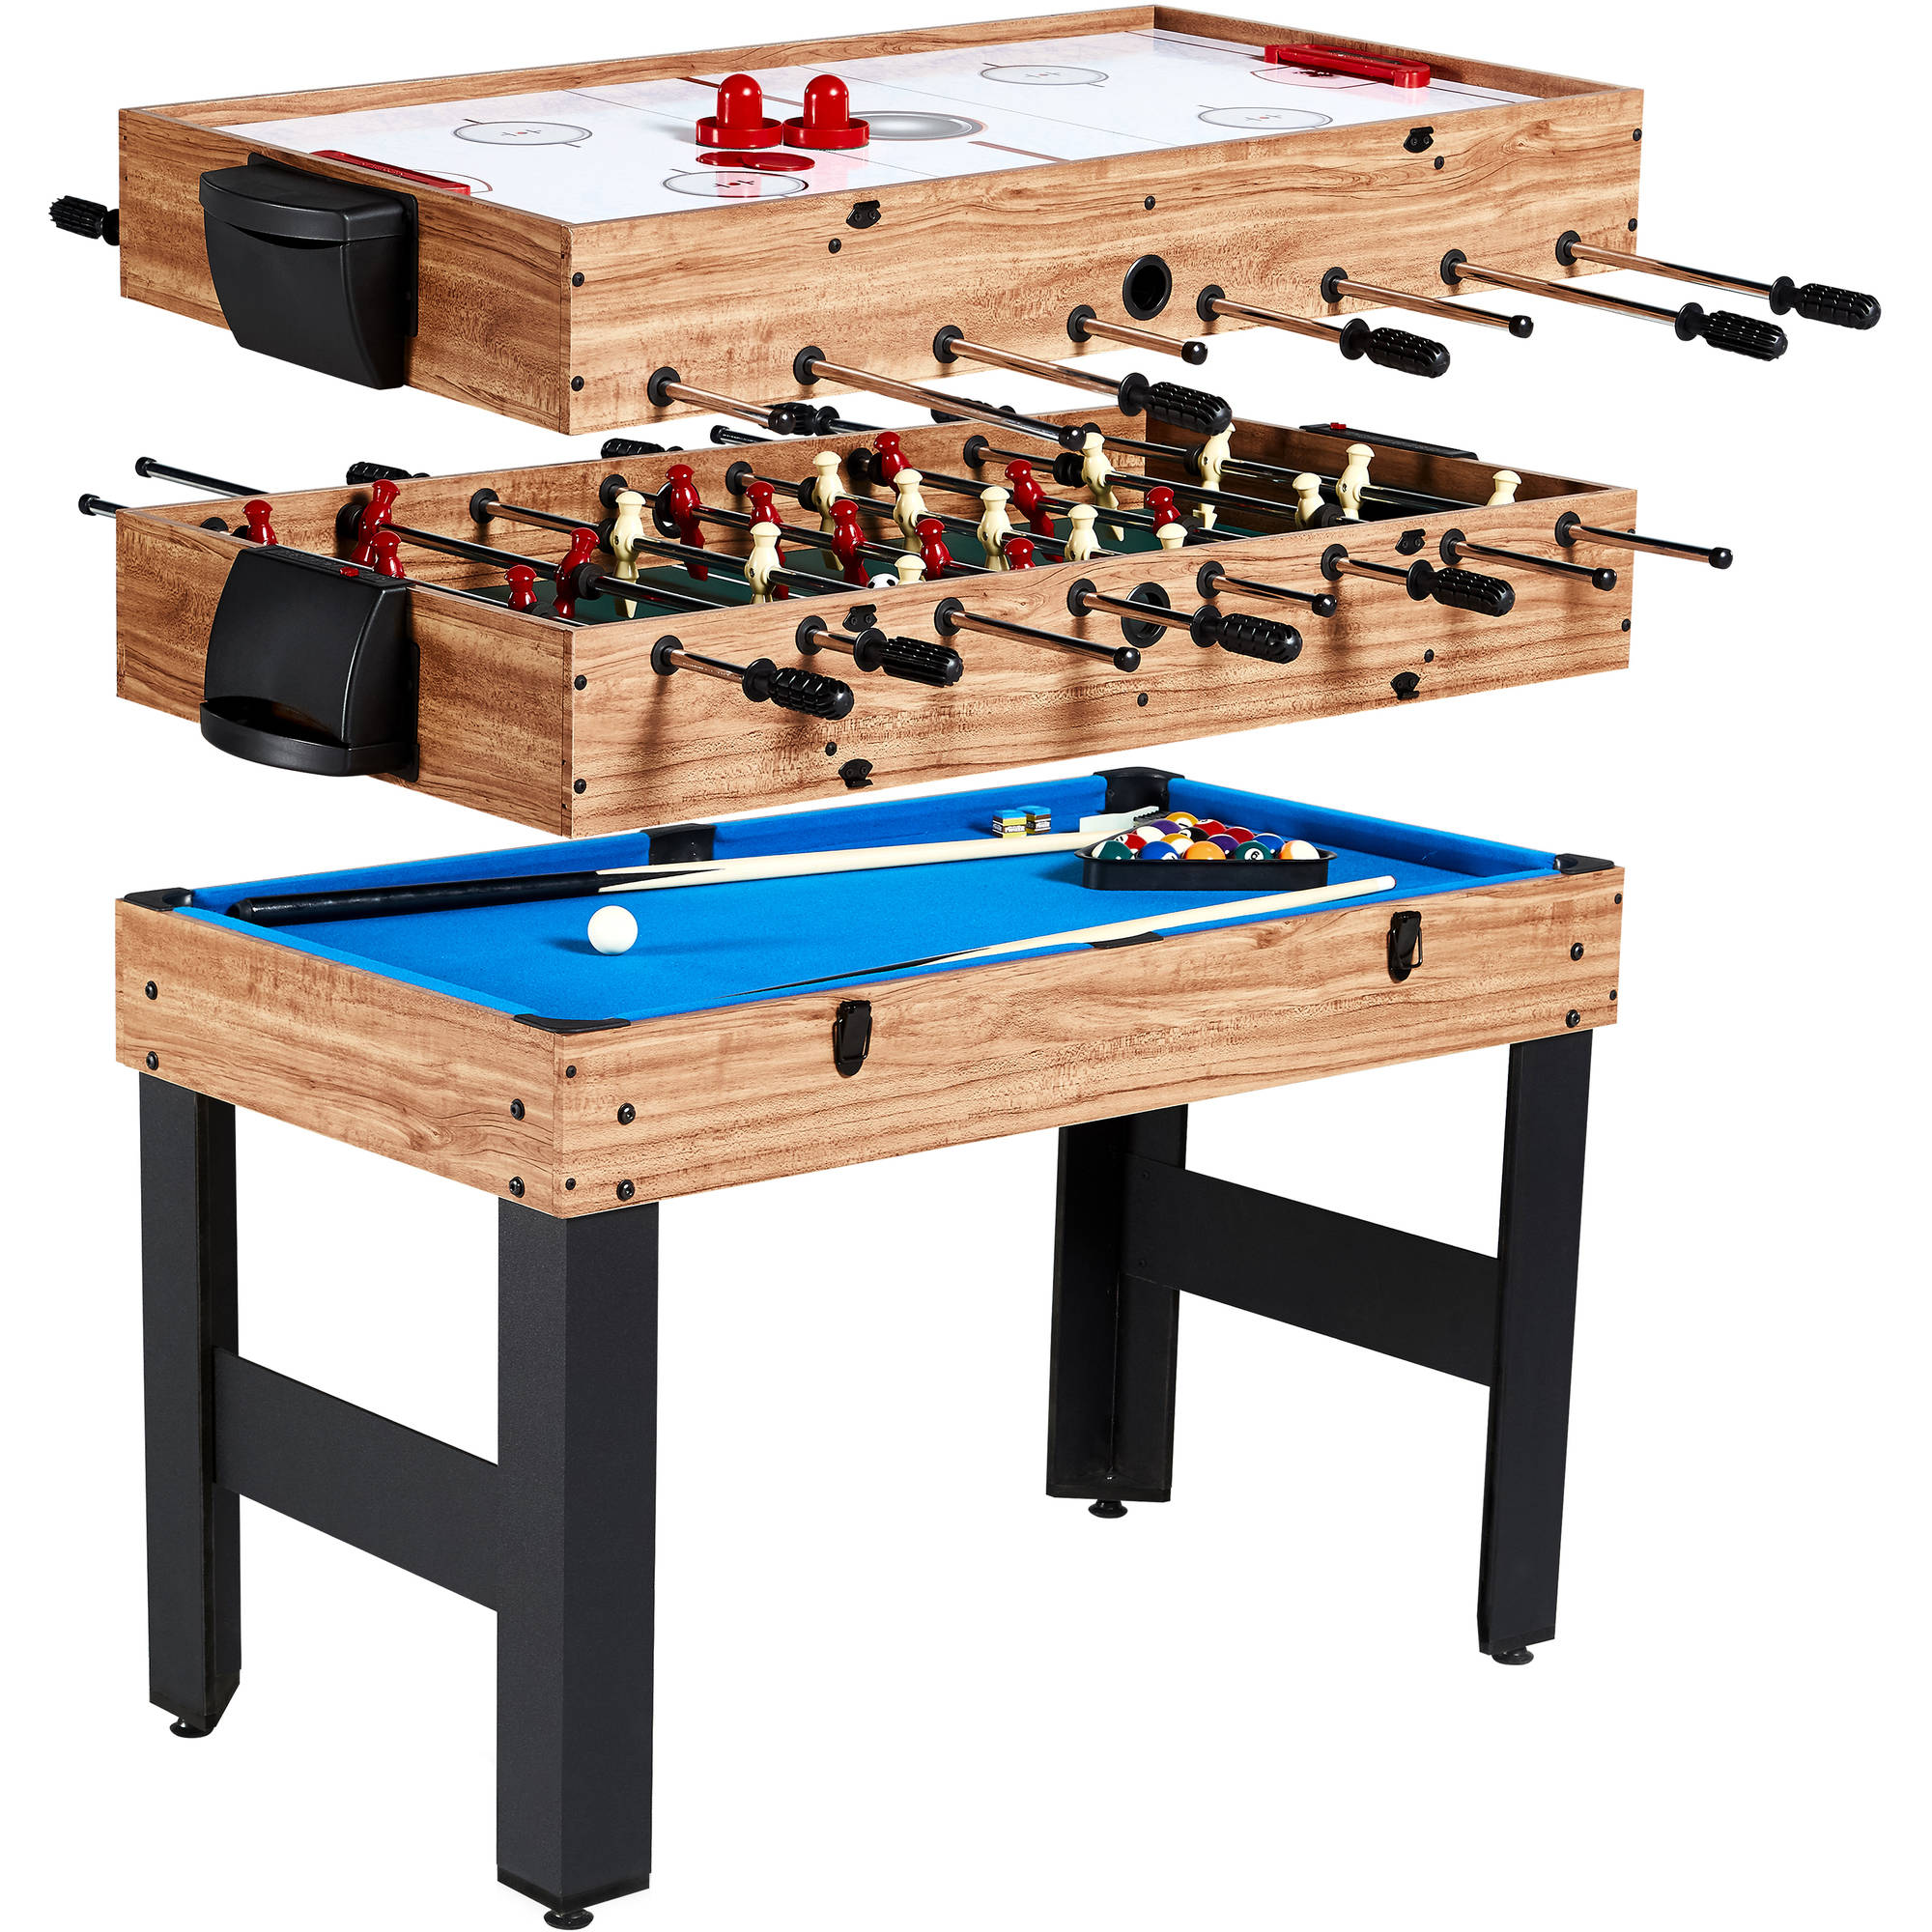 md sports 48 inch 3-in-1 combination game table, 3 games with YCYETMO